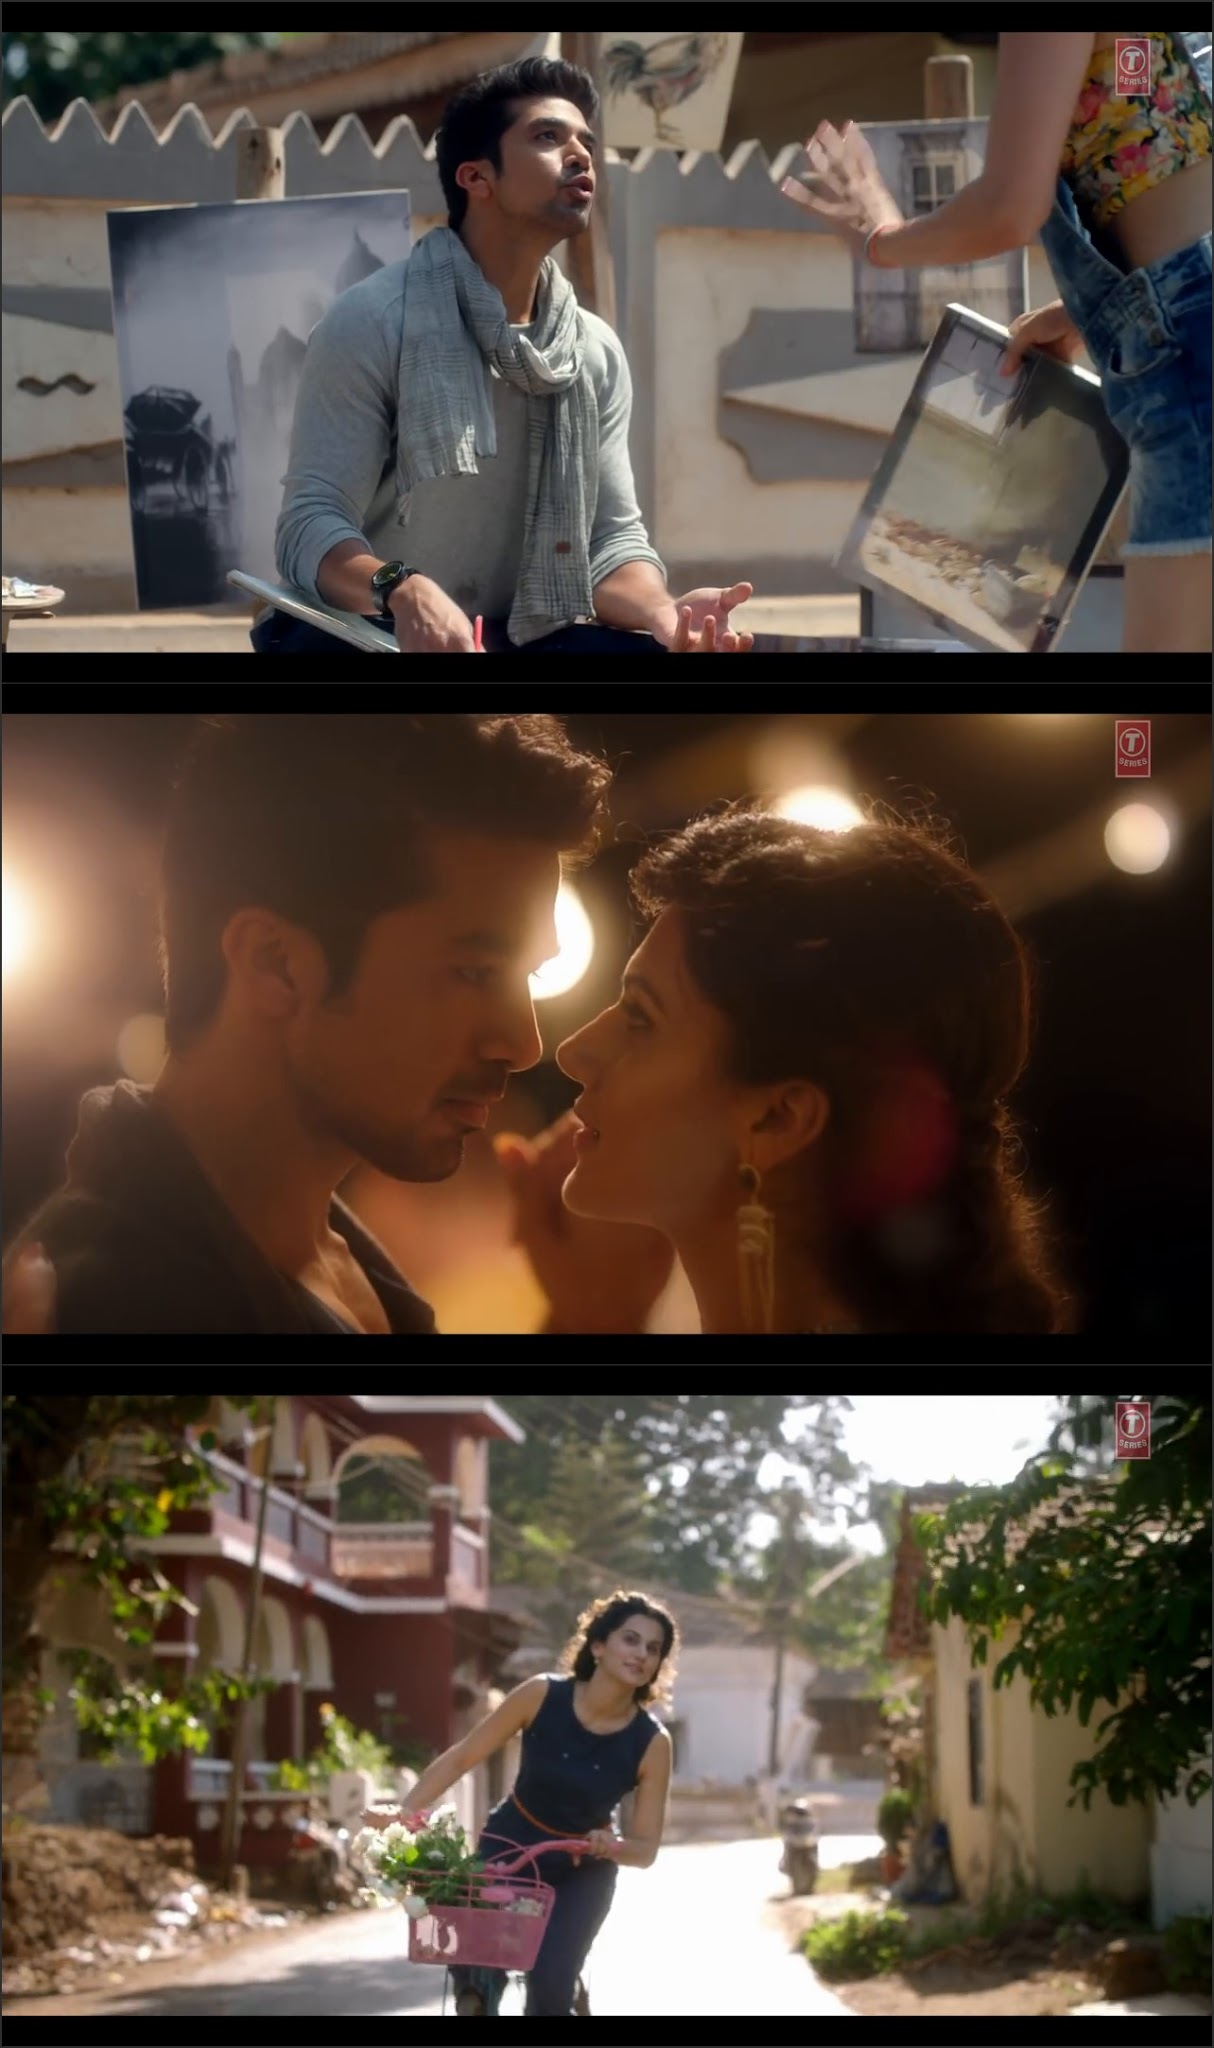 Mediafire Resumable Download Link For Video Song Tum Ho Toh Lagta Hai (2016) - Amaal Mallik Ft. Shaan